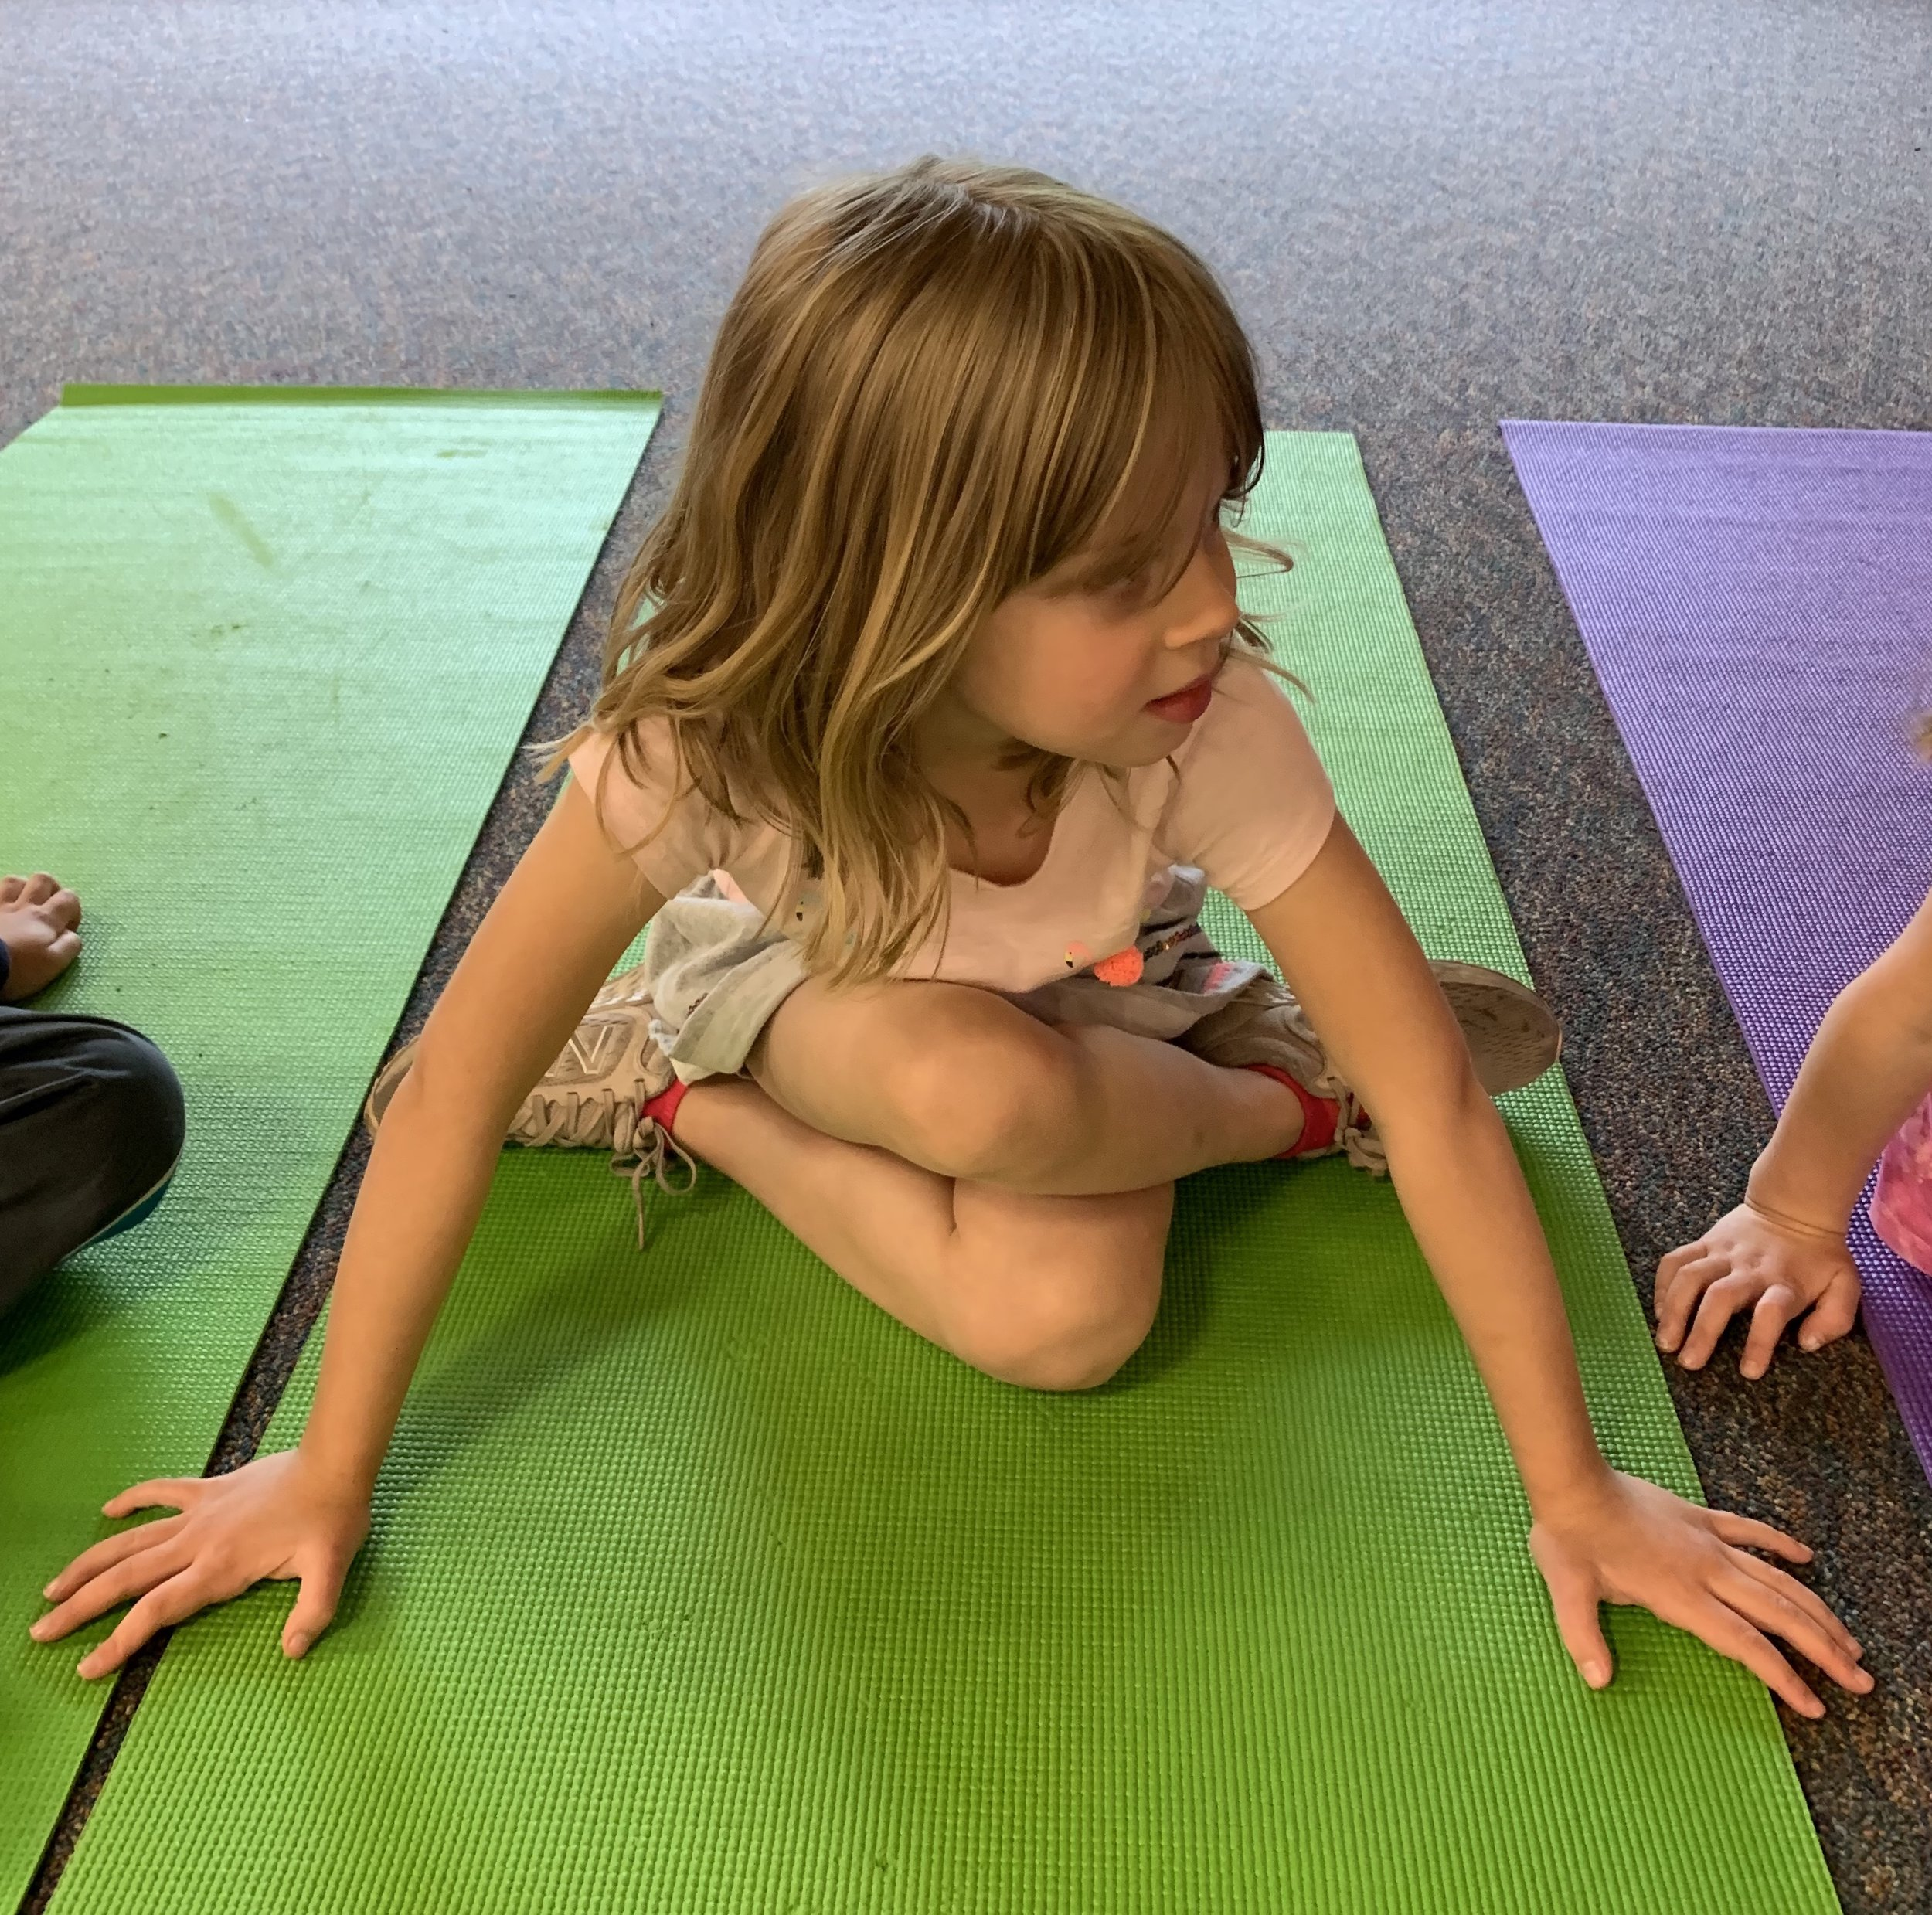 little girl criss cross applesauce yoga.jpg